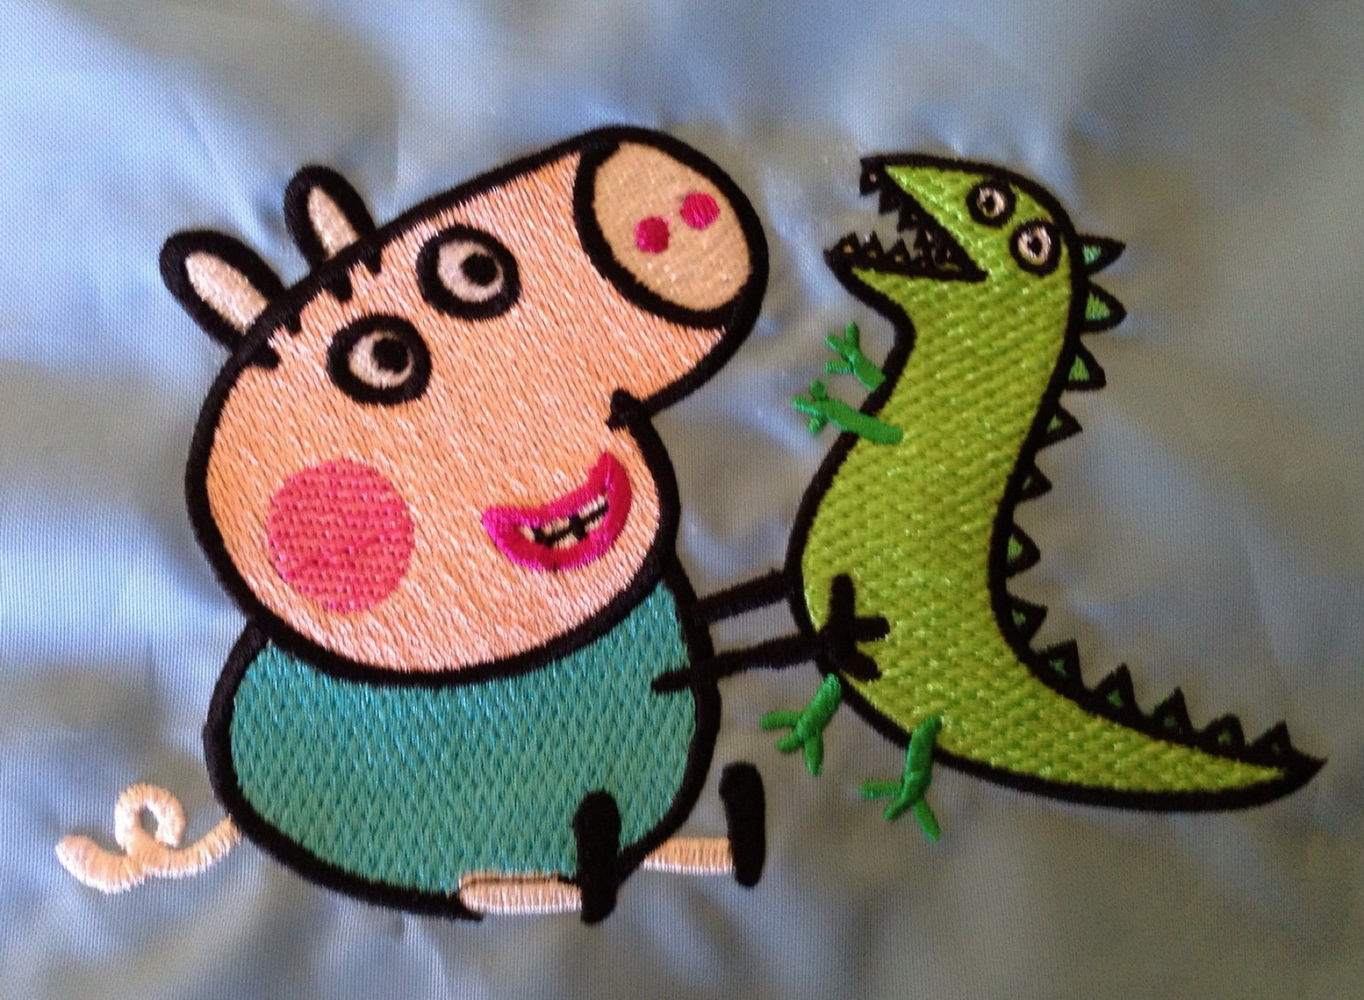 Peppa Pig with caterpillar design embroidered